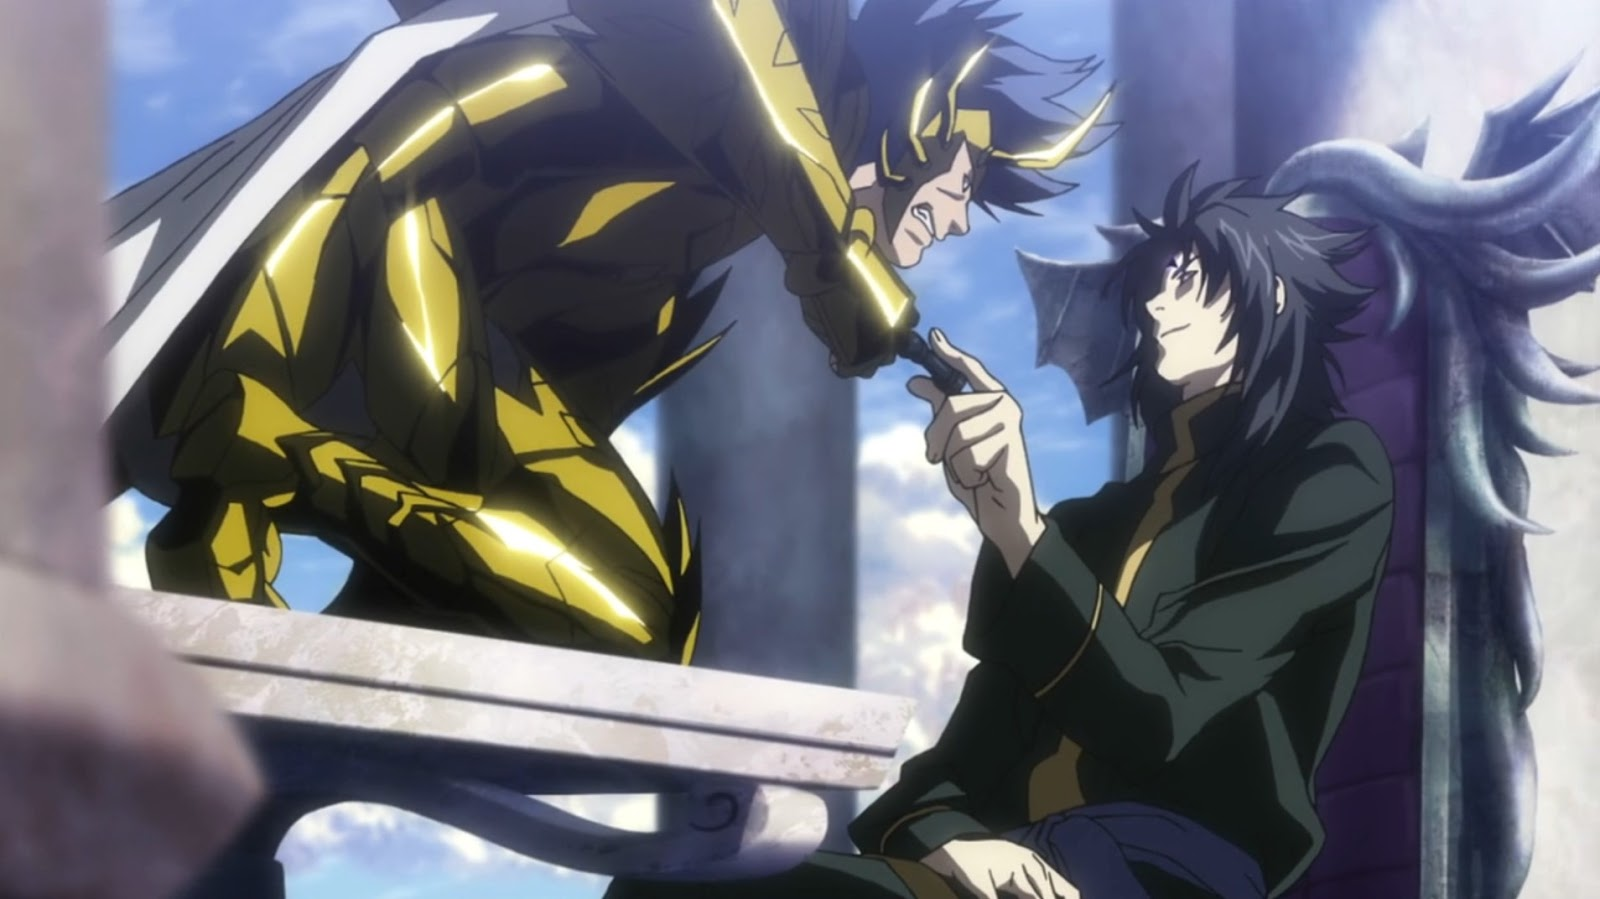 Saint Seiya: The Lost Canvas Episodio 17 Dublado